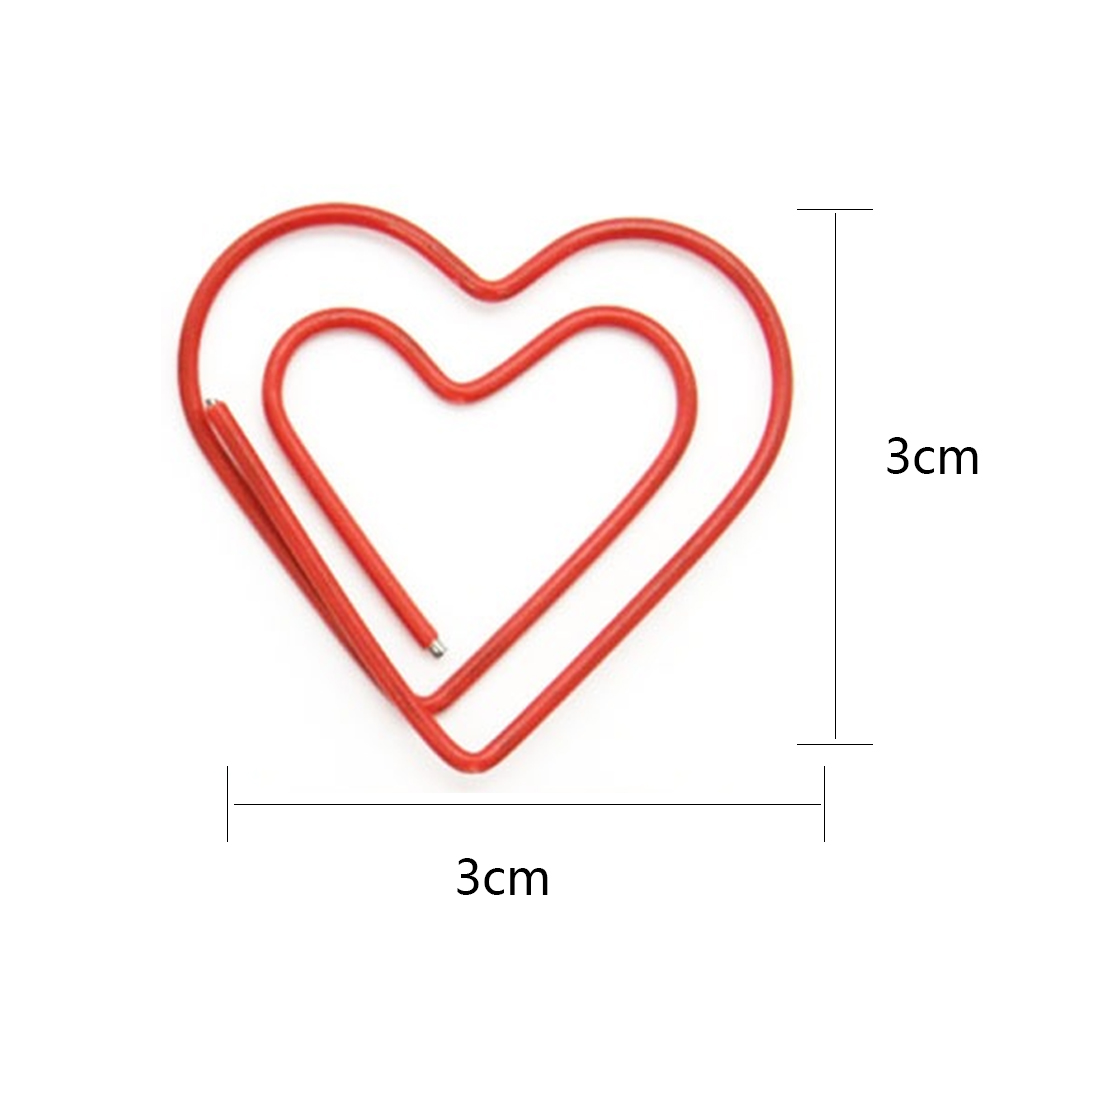 FangNymph 10Pcs/pack Beautiful Love Heart Paper Clip Metal Material Bookmarks For Book Stationery School Office Supplies